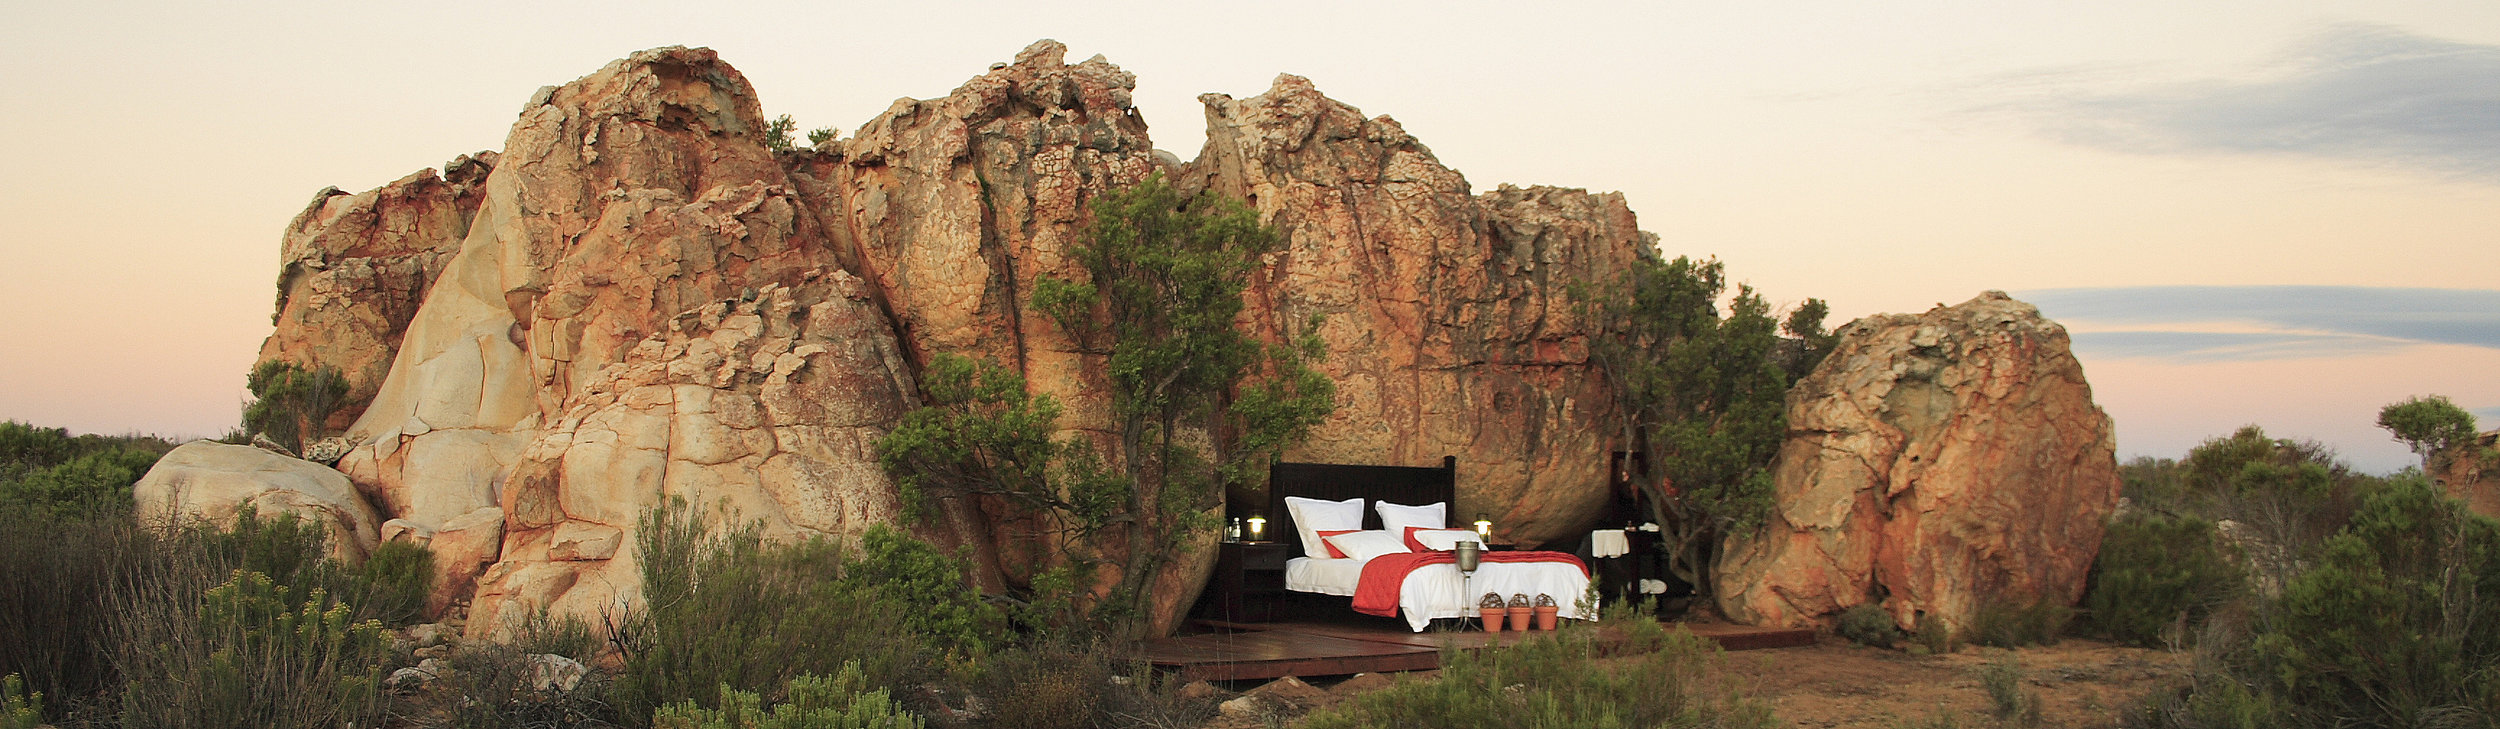 Kagga Kamma - SOUTH AFRICA